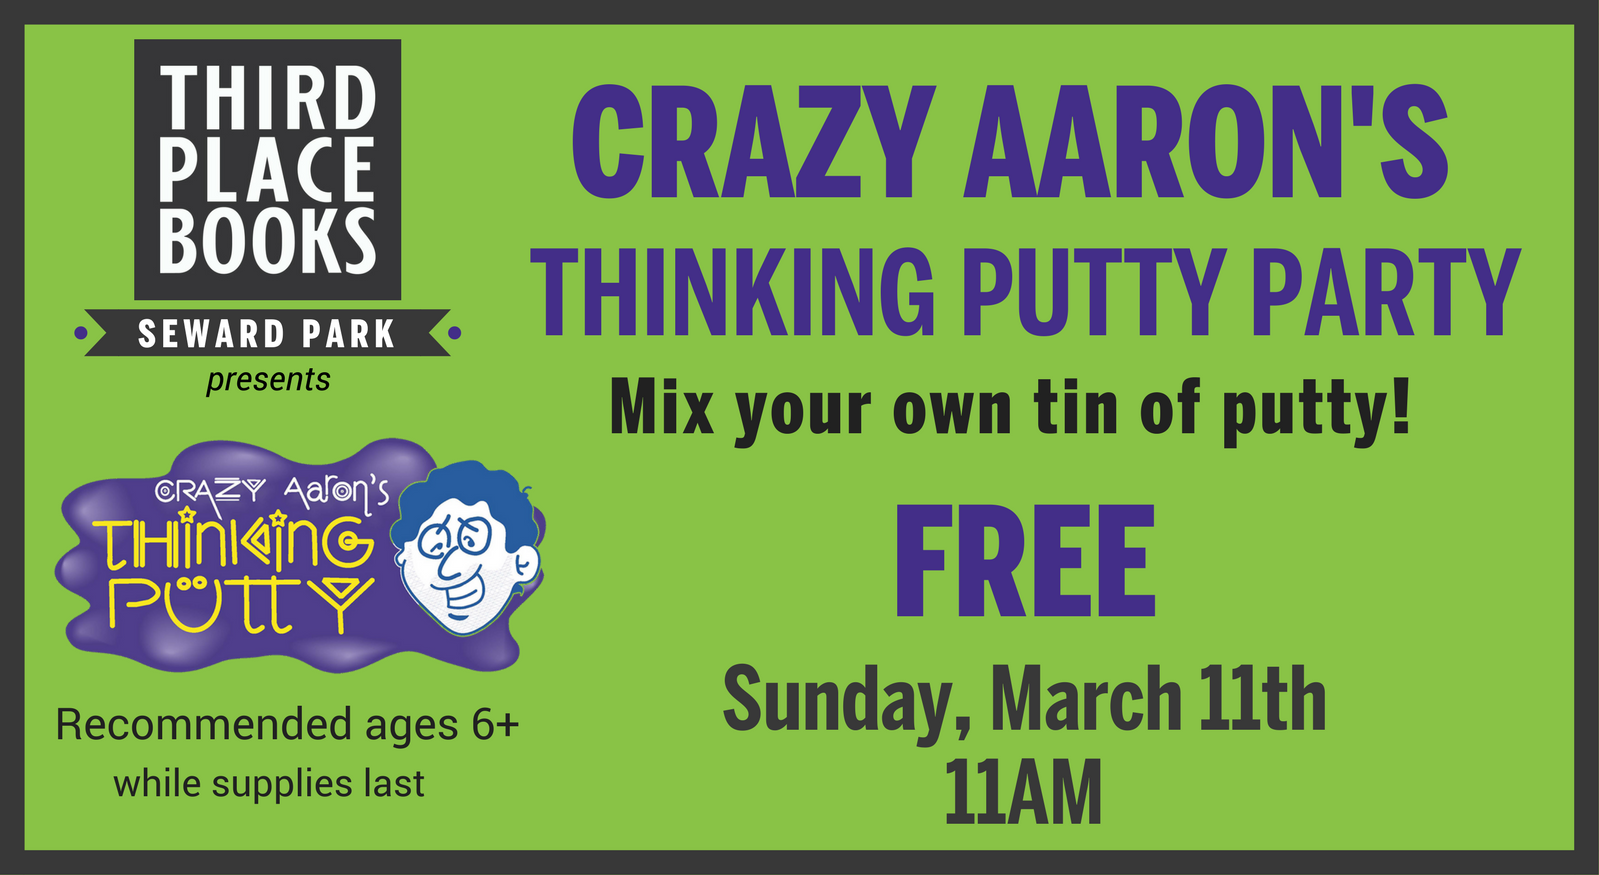 Crazy Aarons's Thinking Putty Party